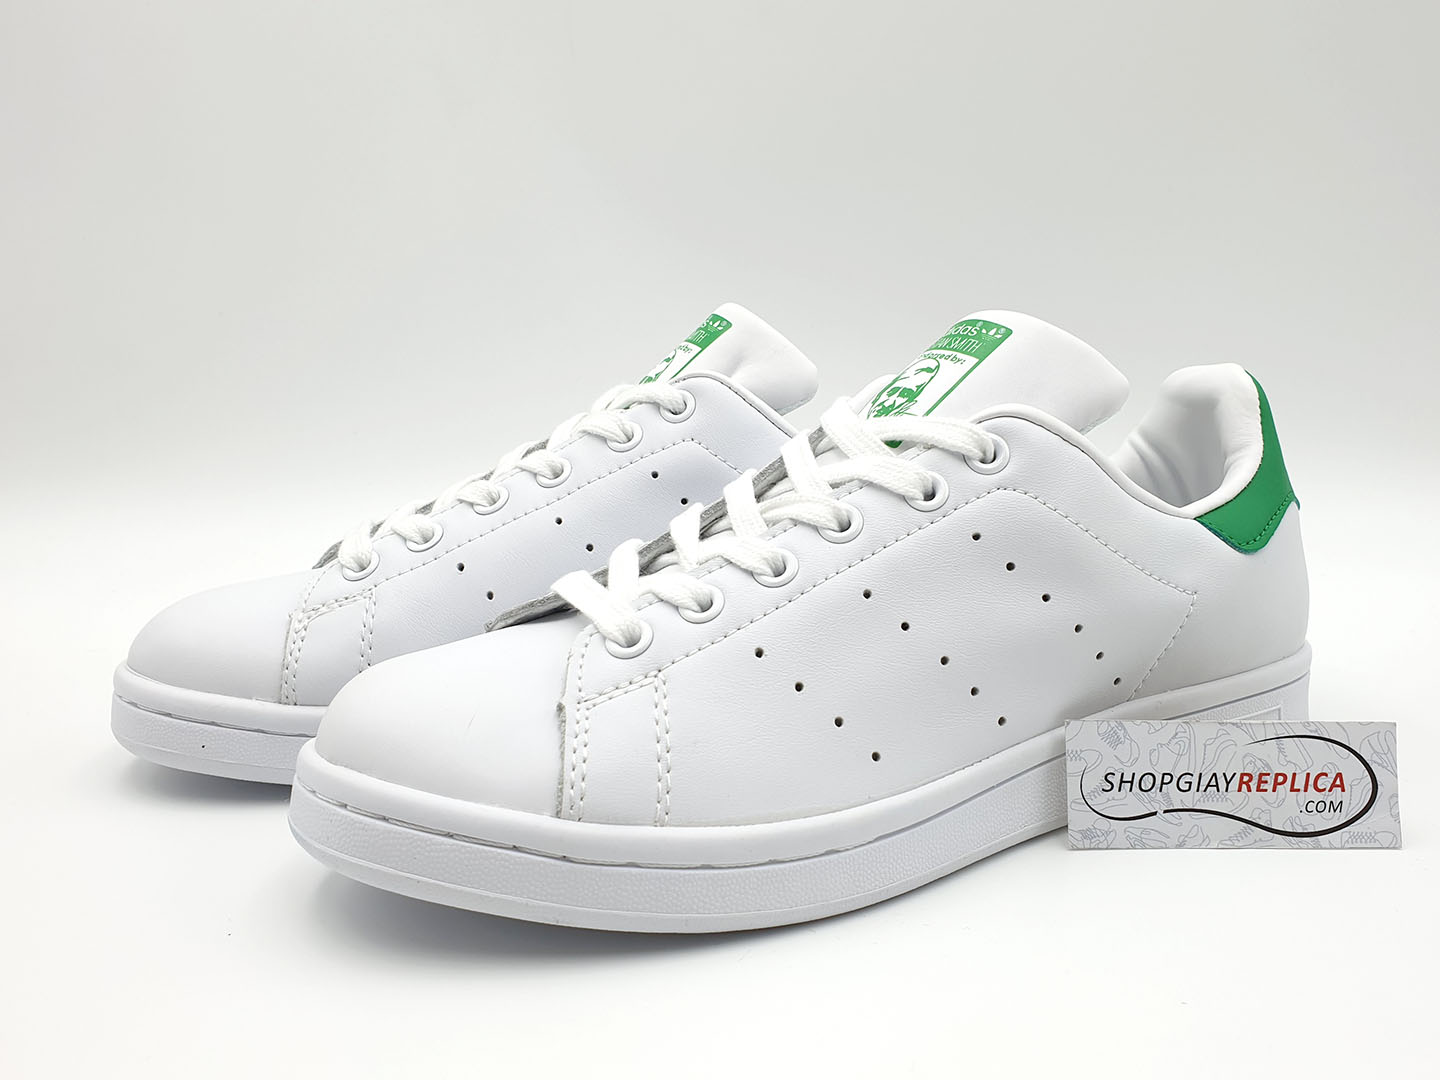 giày adidas stan smith xanh la replica